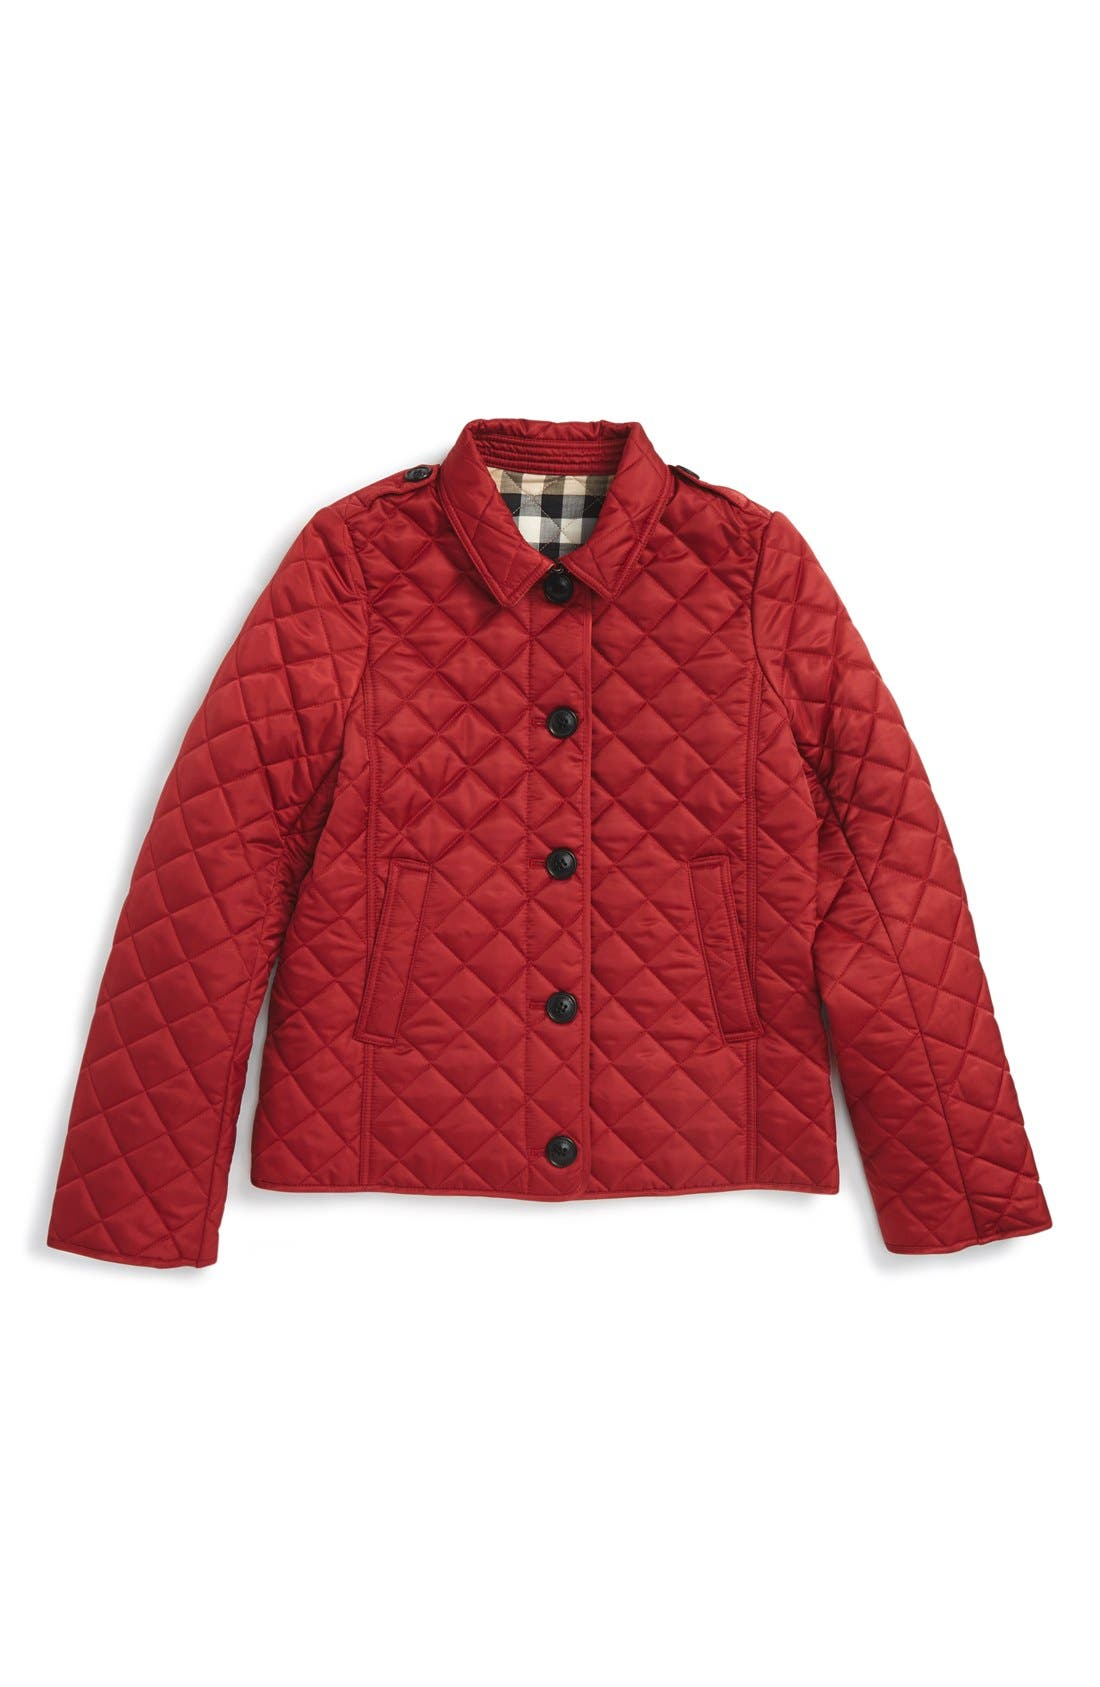 Main Image - Burberry 'Mini Ashurst' Quilted Jacket (Little Girls & Big Girls)